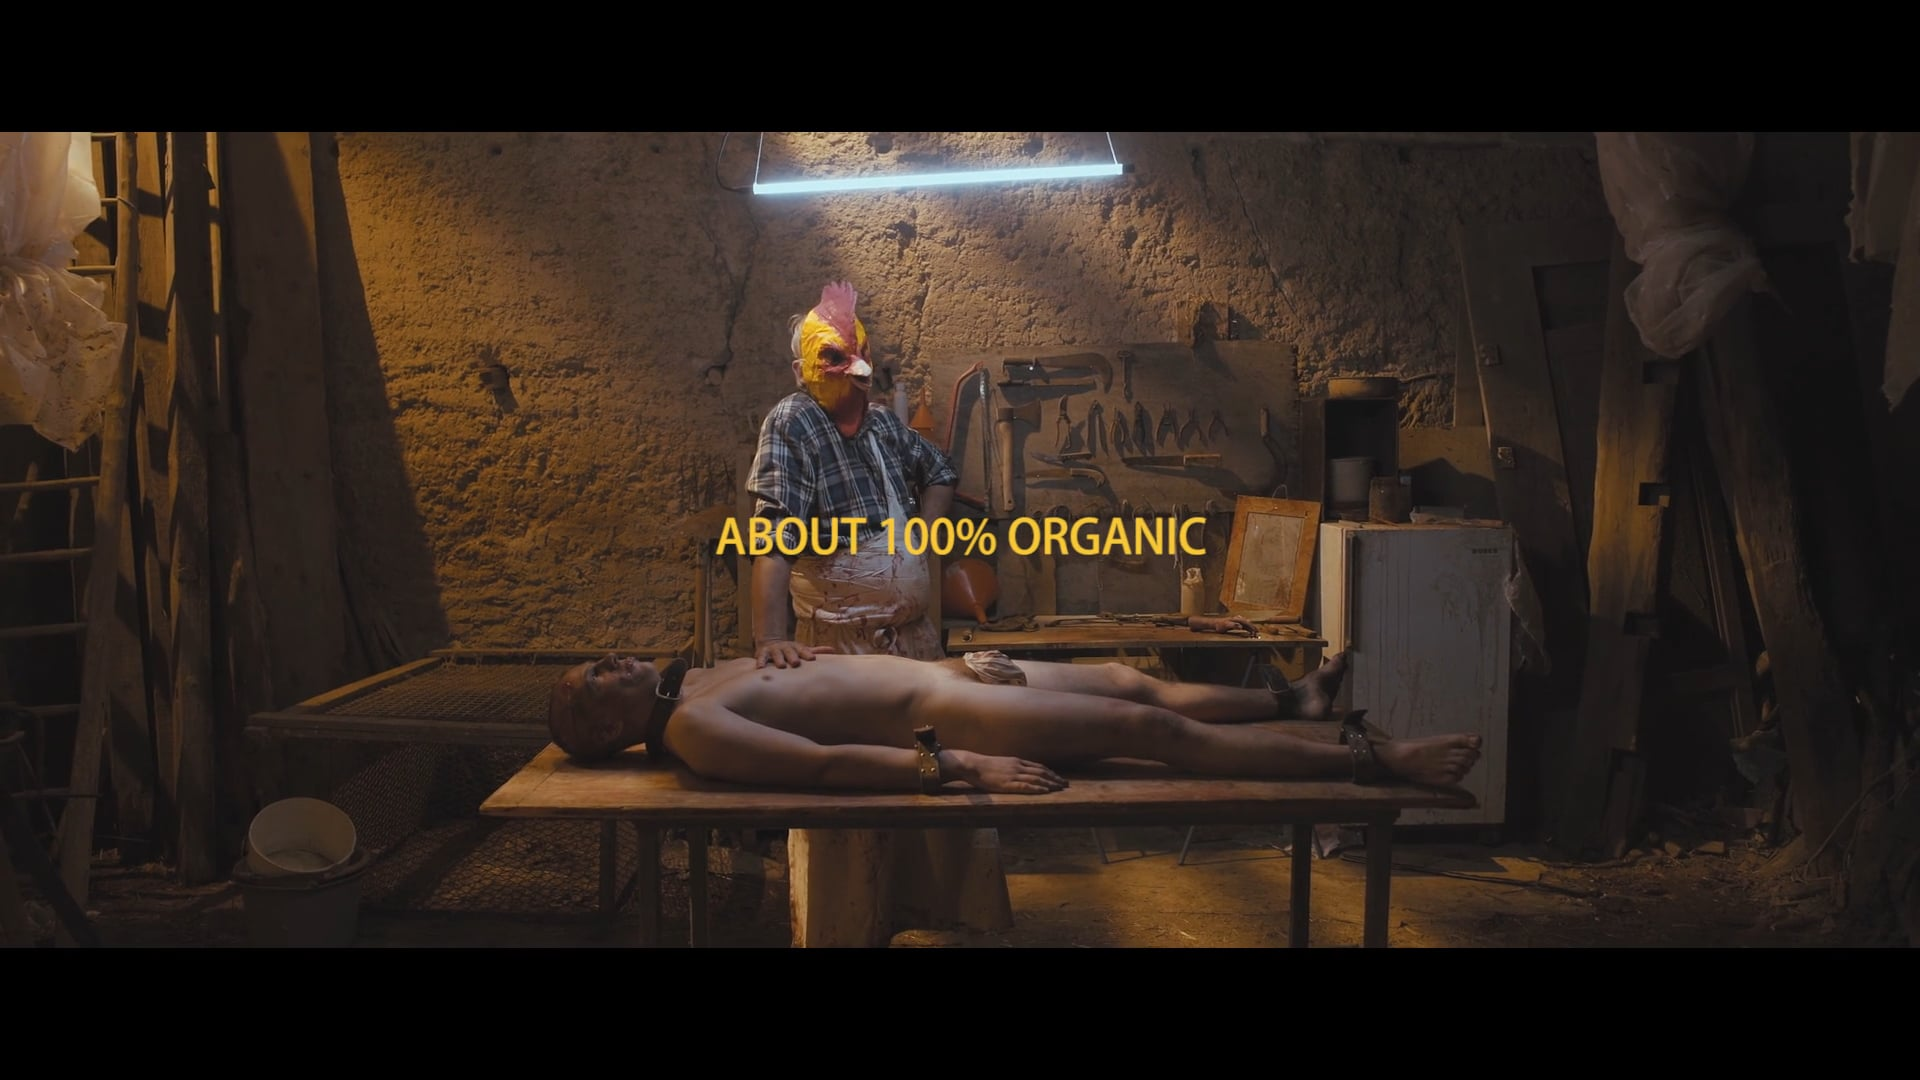 About 100% Organic (Making of)